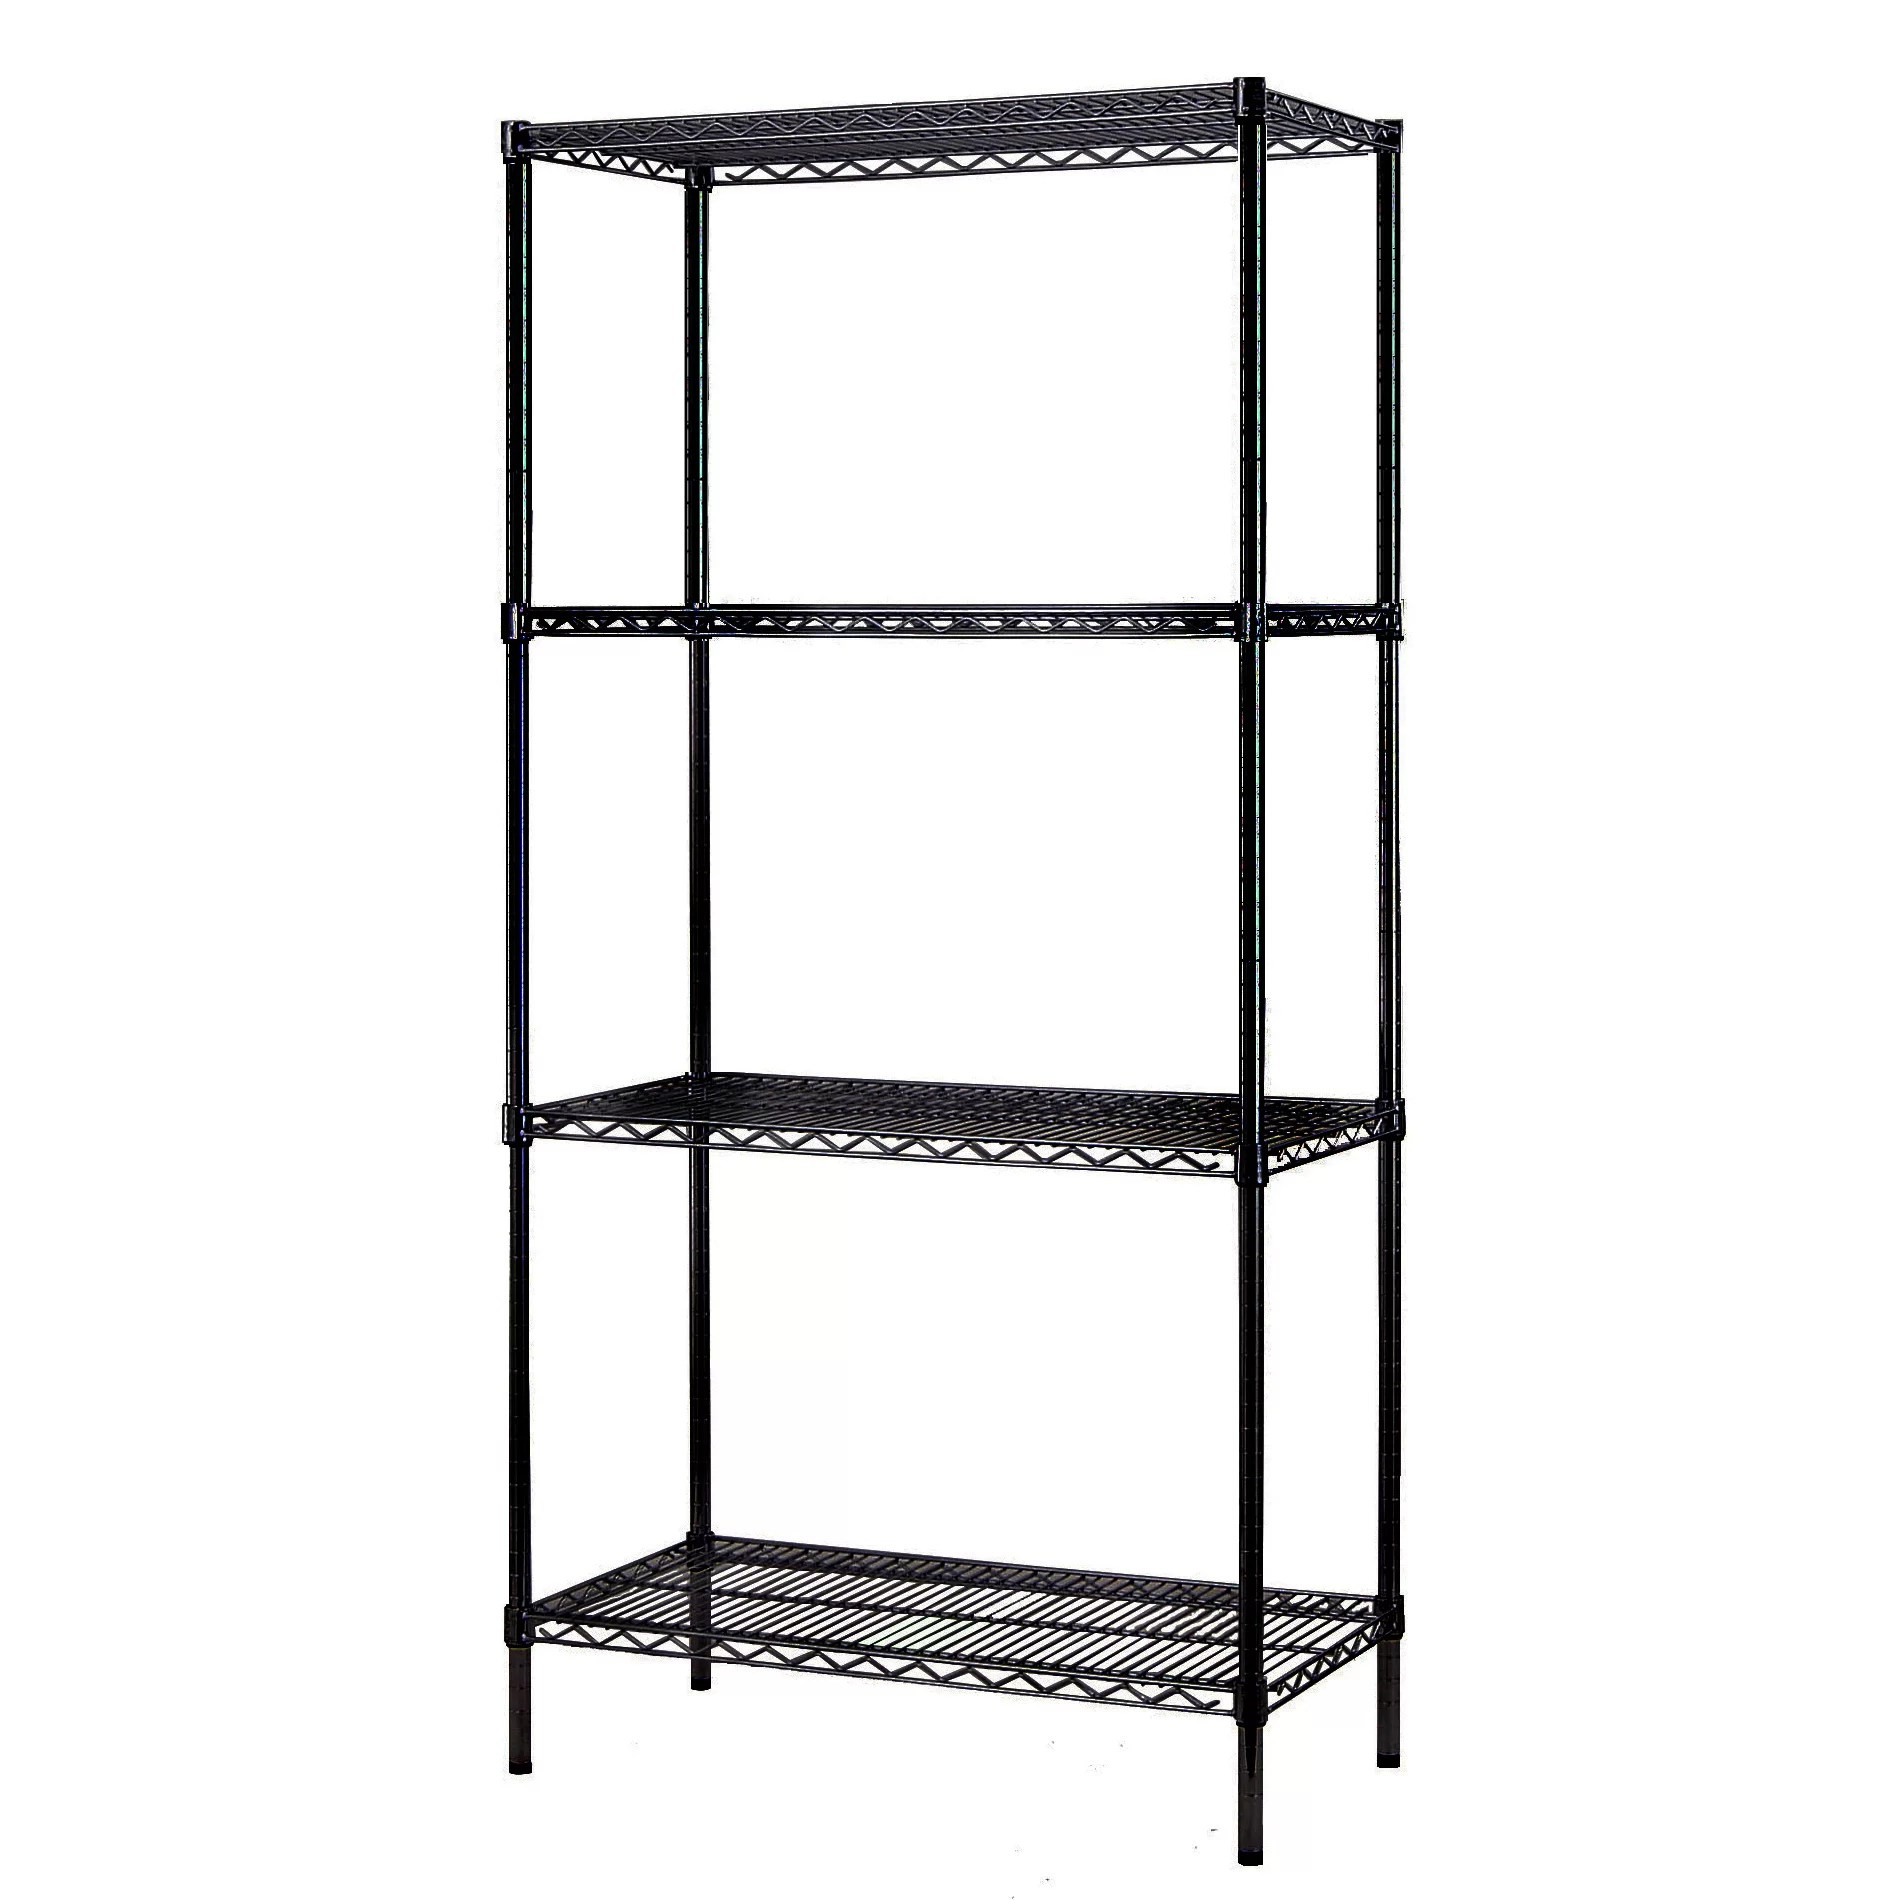 Excel All Purpose Wide Rack 72